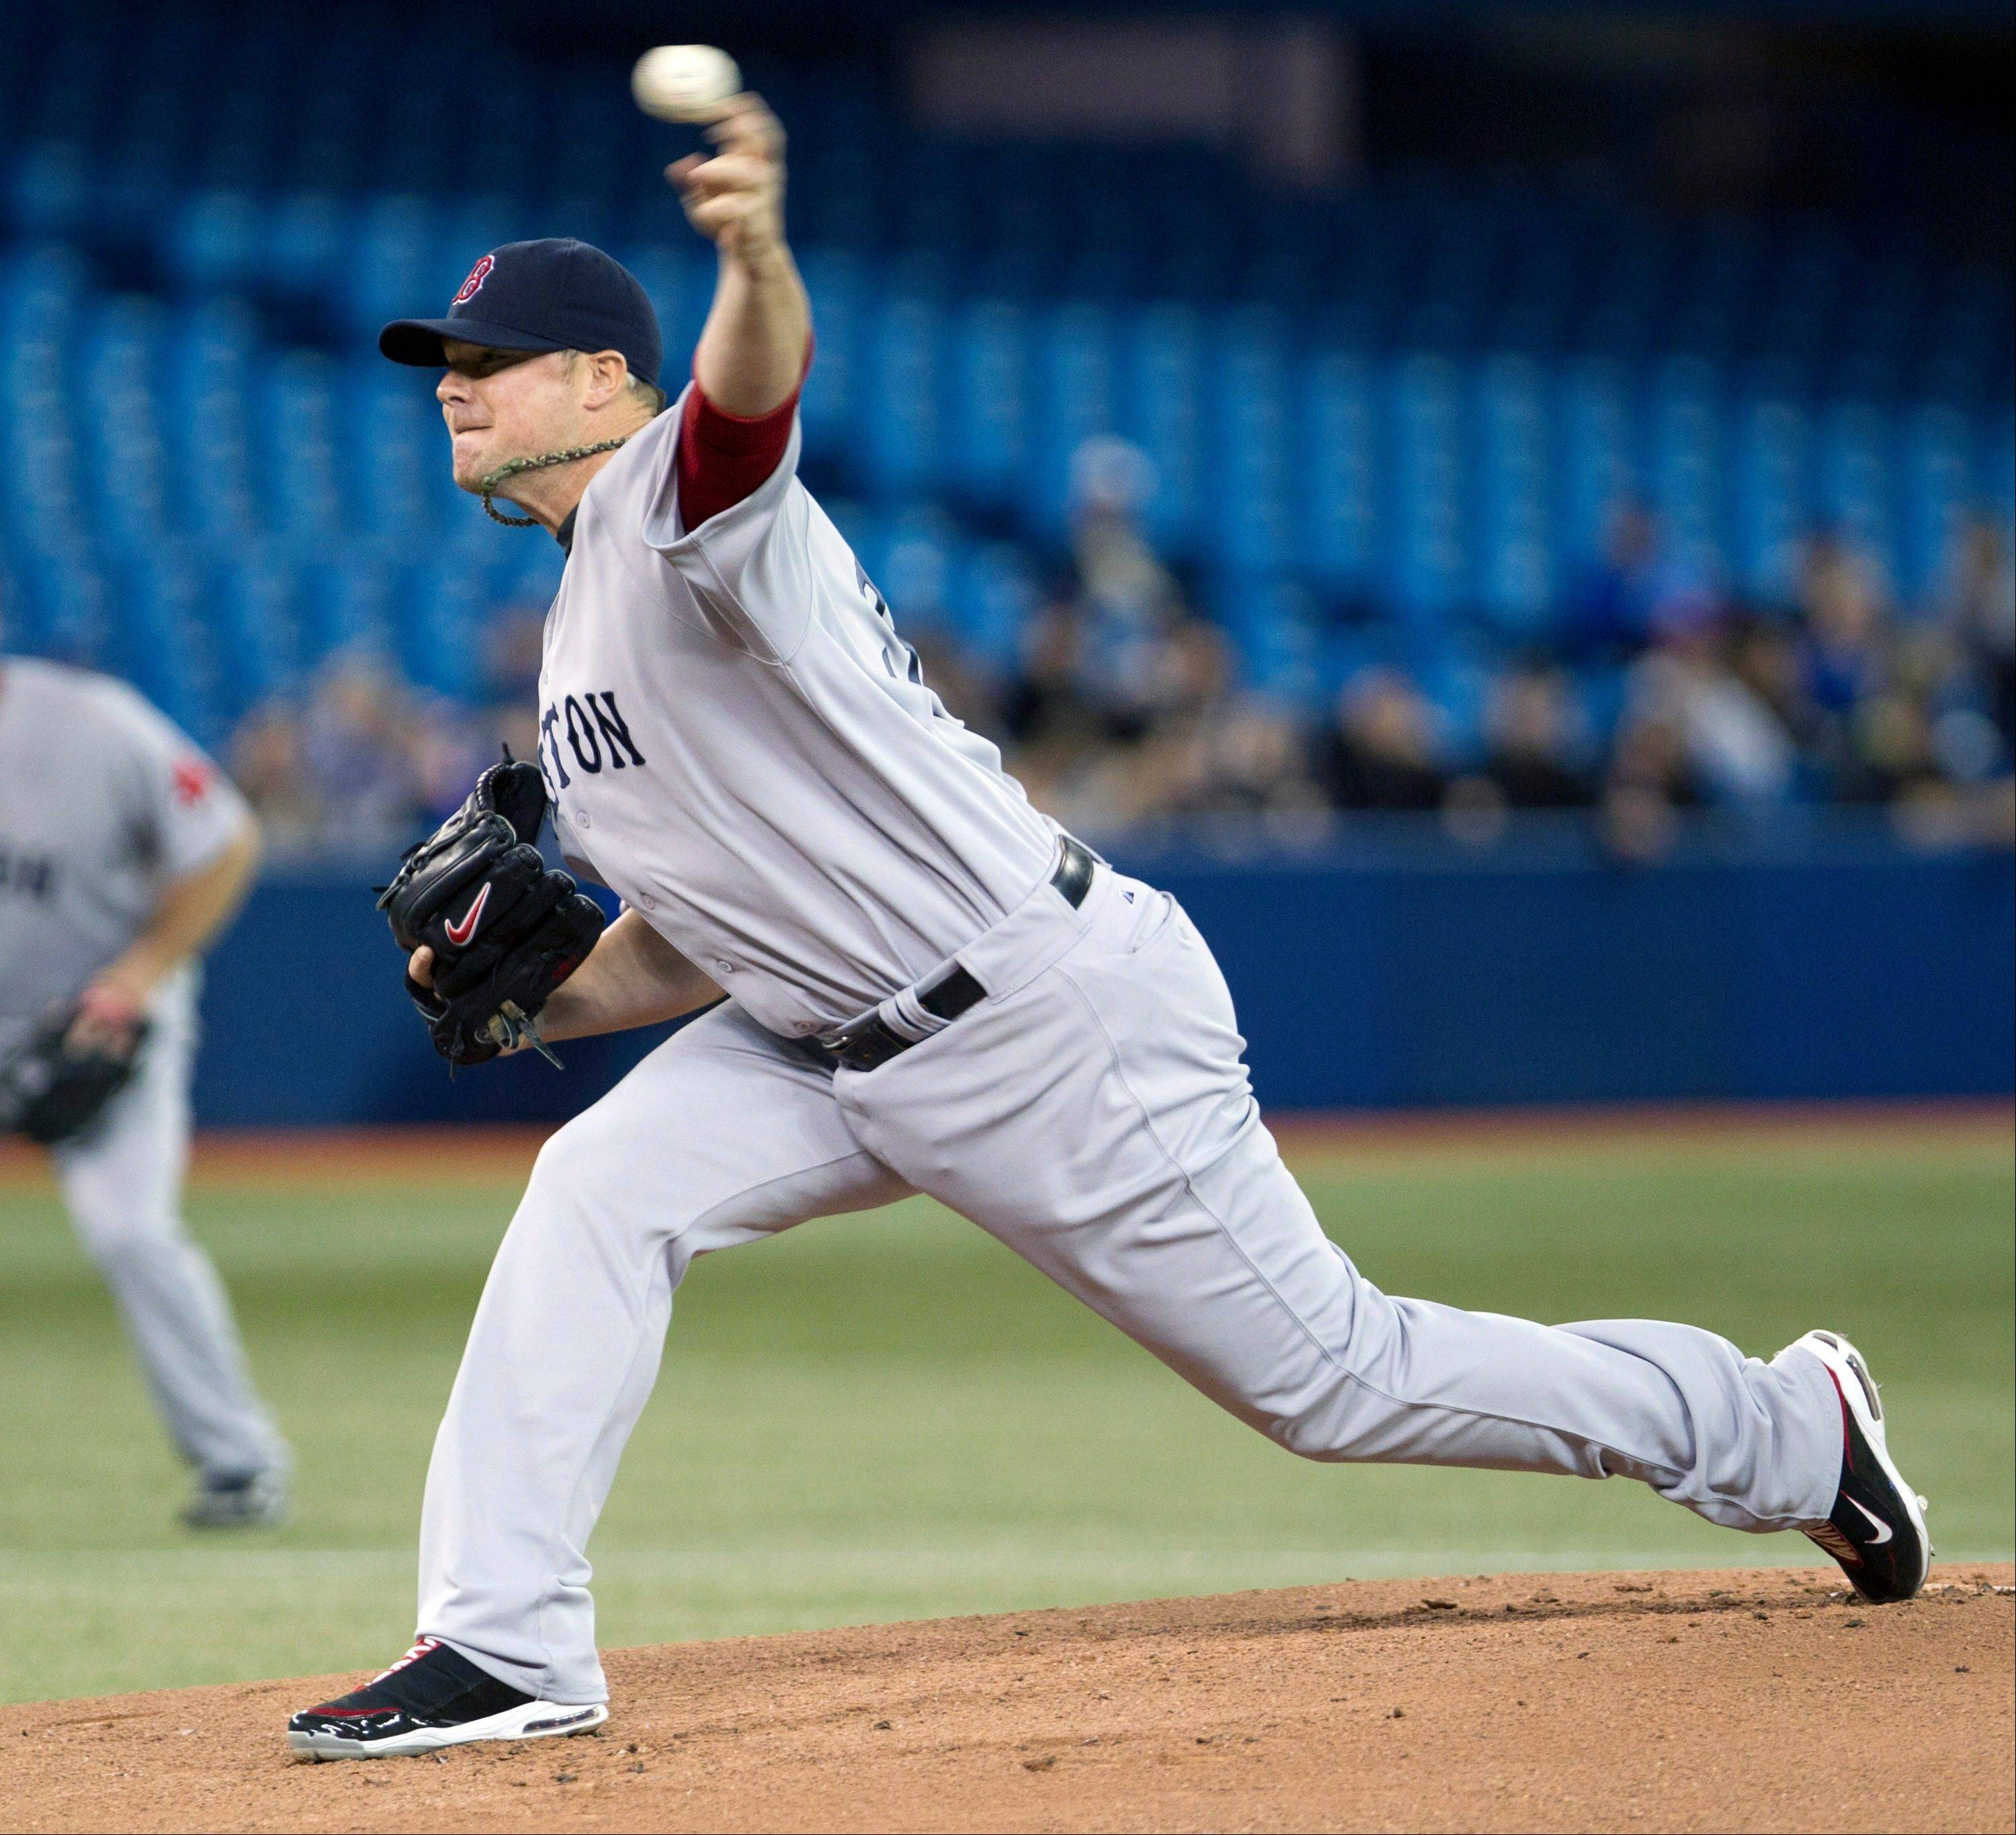 Boston Red Sox starting pitcher Jon Lester throws against the Toronto Blue Jays in first inning of a baseball game in Toronto on Wednesday, April 11, 2012.